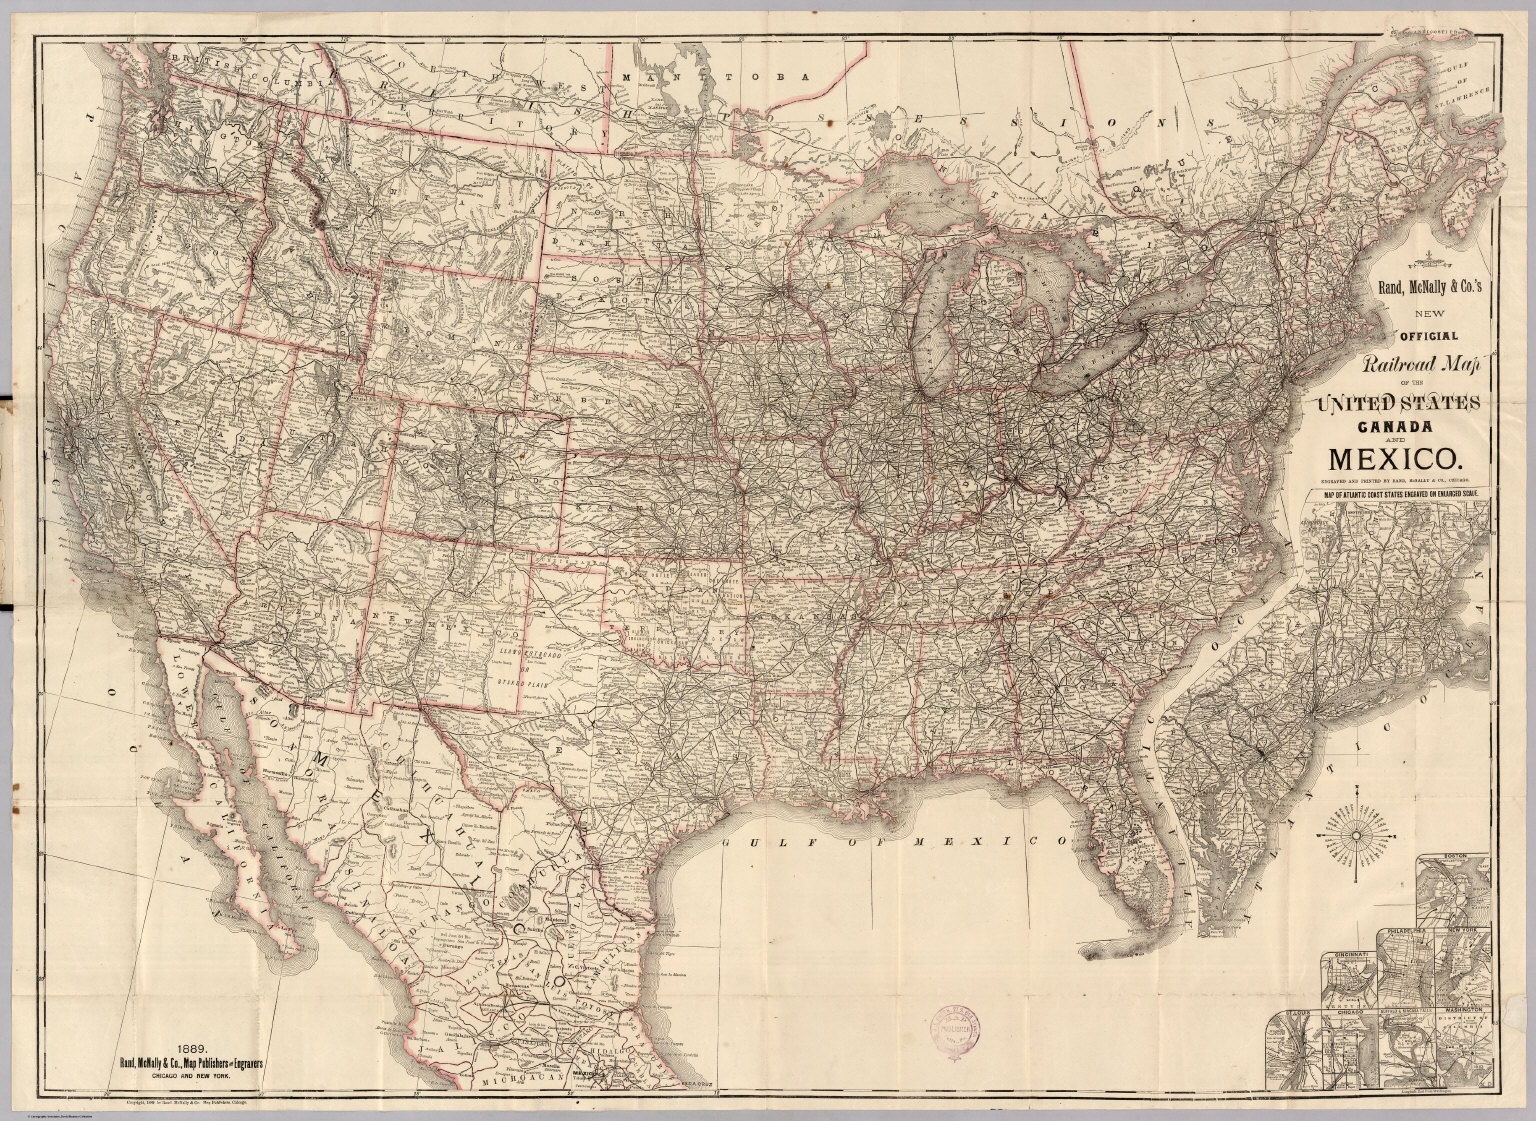 Railroad Map Of The United States David Rumsey Historical Map - 1889 us railroad map